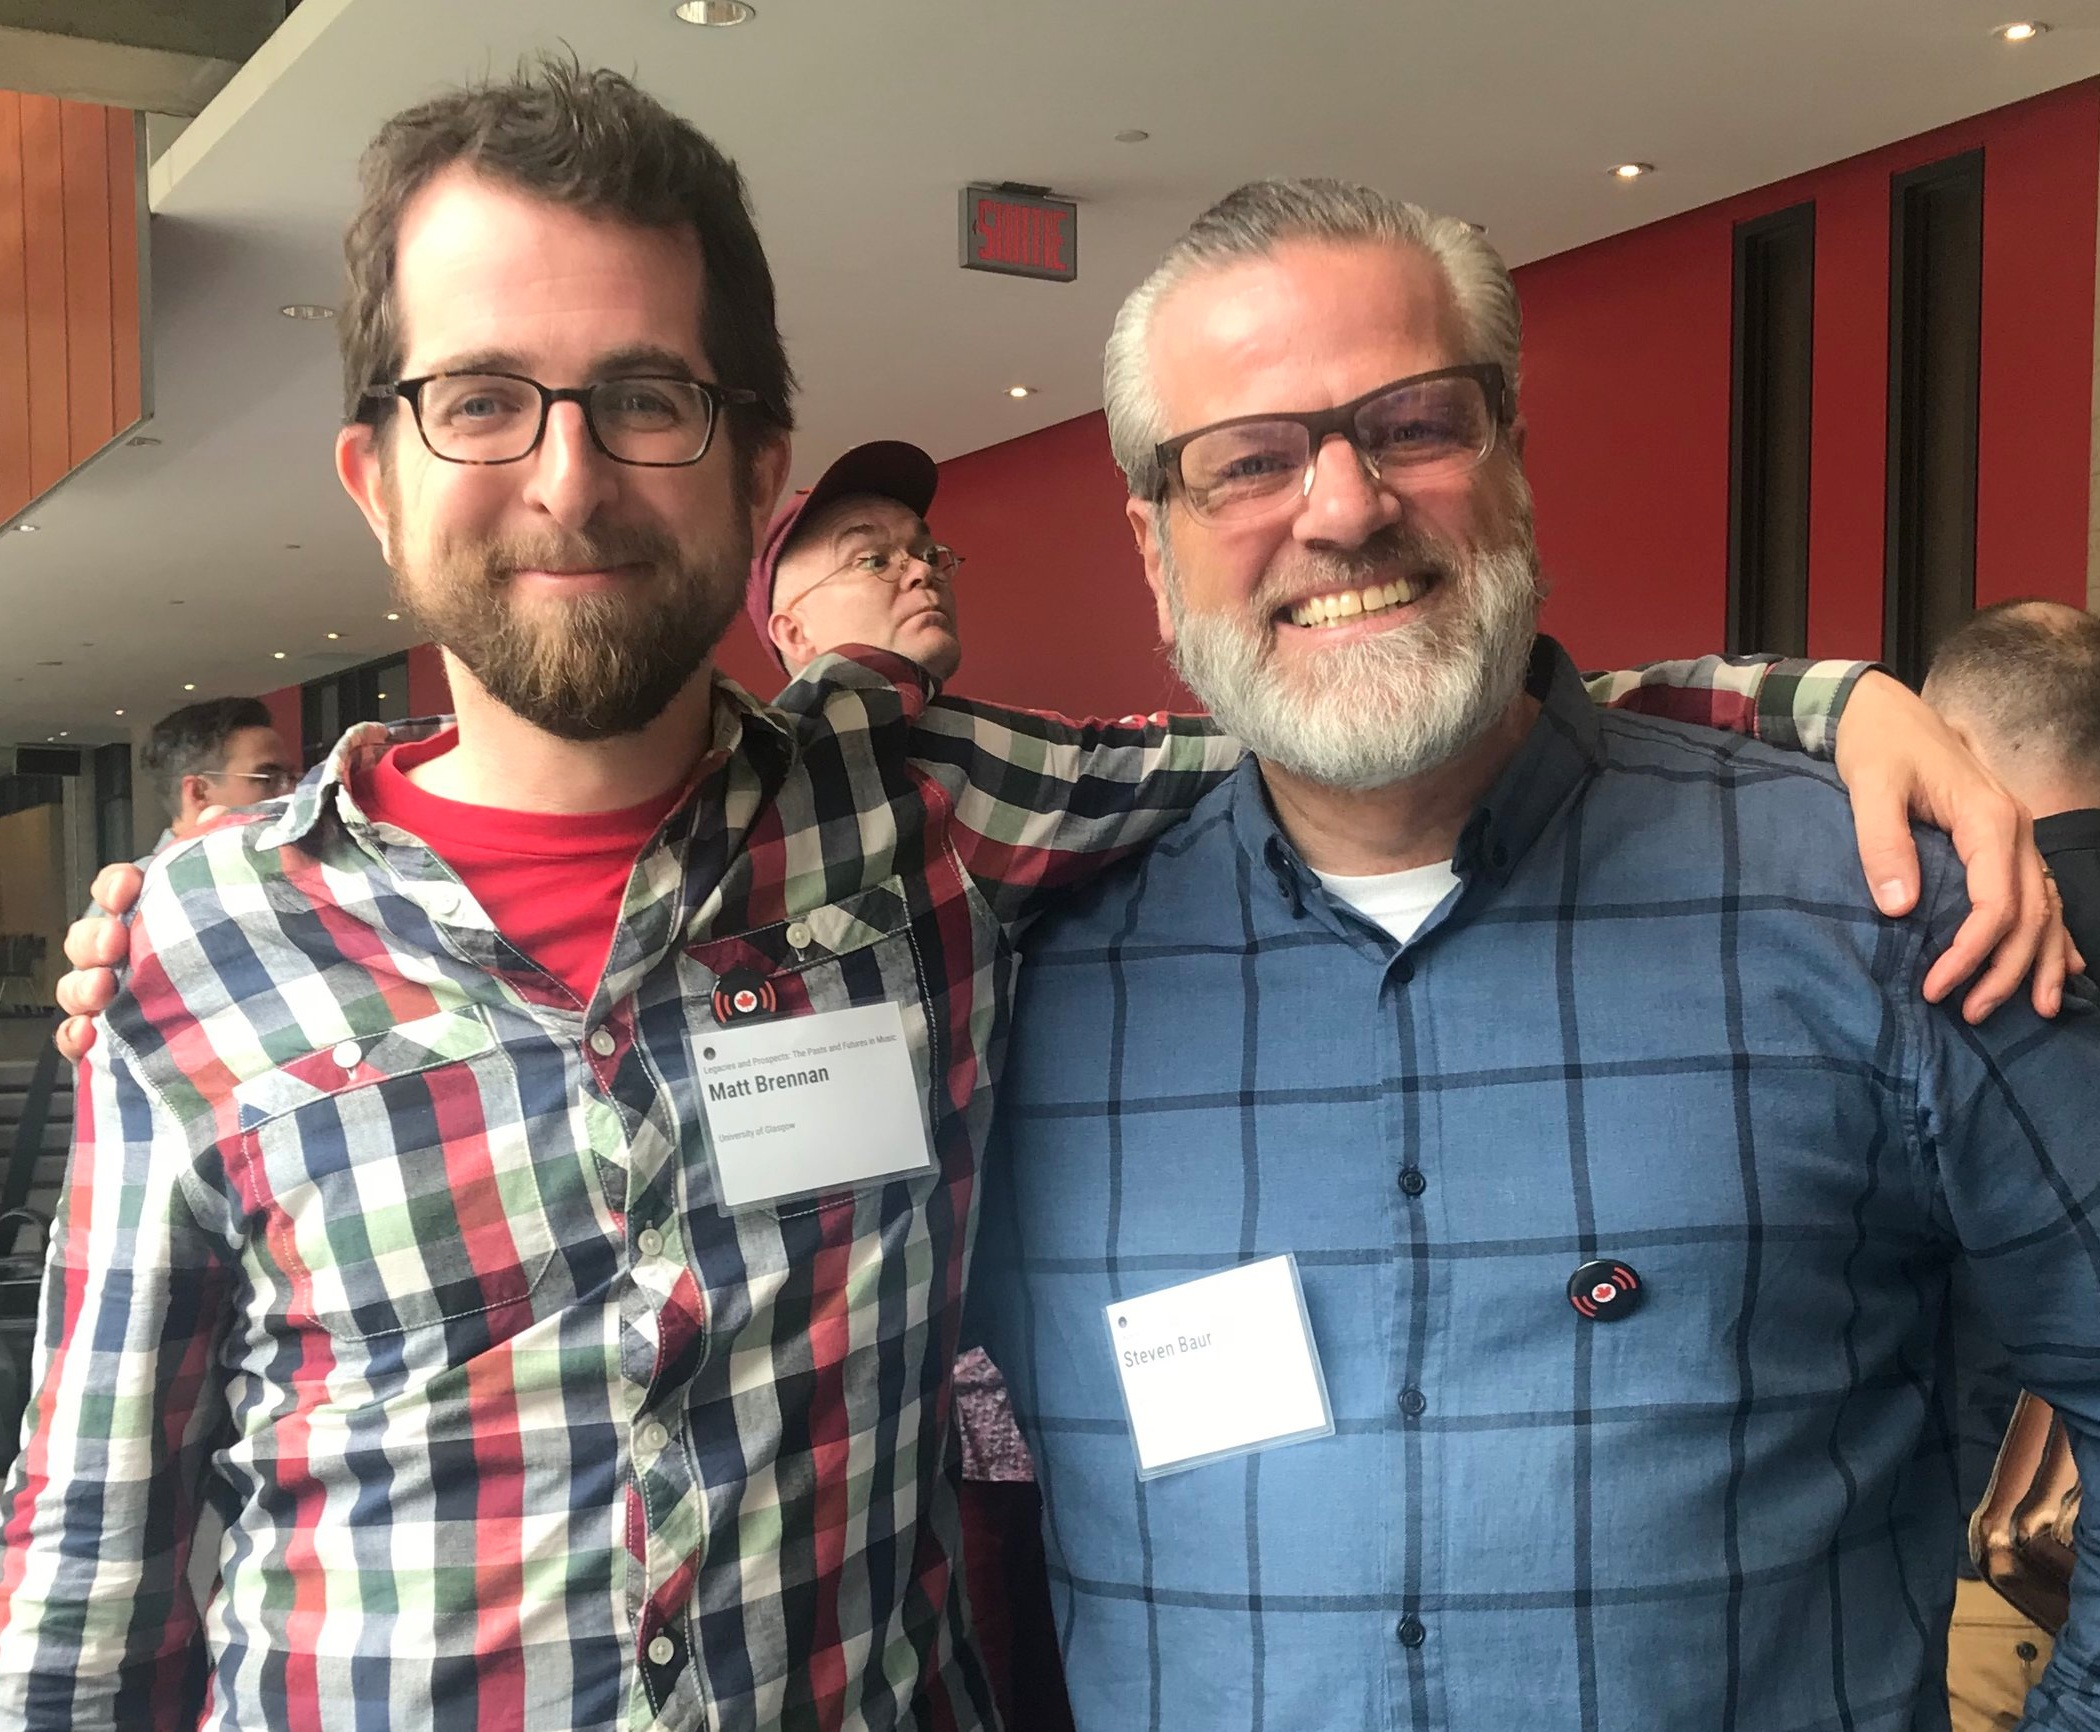 Matt Brennan (left) with Prize Committee Chair Steven Baur (right) at the IASPM Canada 2019 Conference.